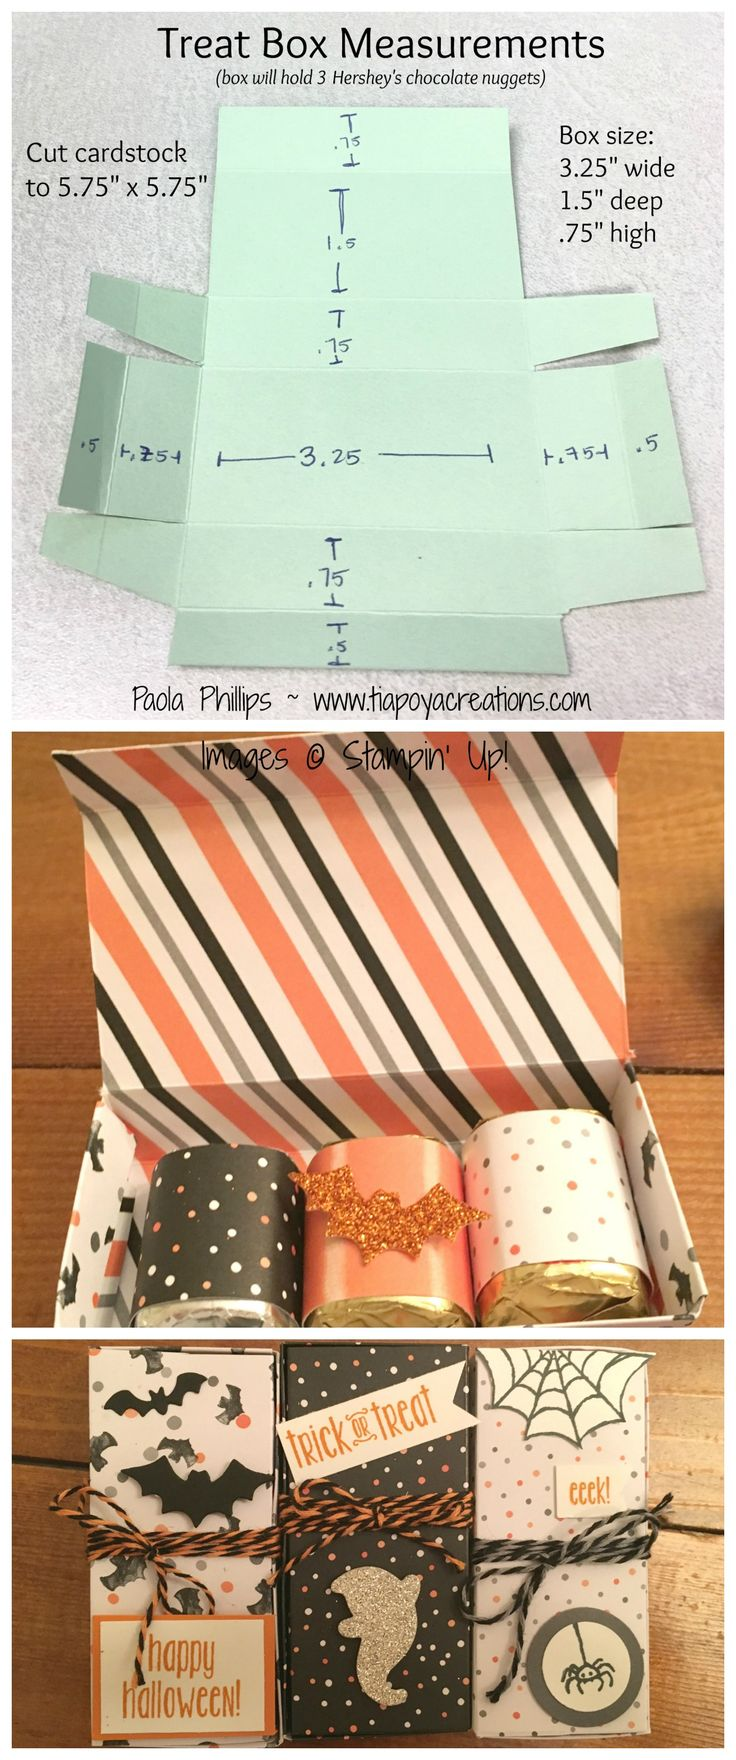 halloween treat box instructions handmade by paola phillips - Pinterest Halloween Treat Bags